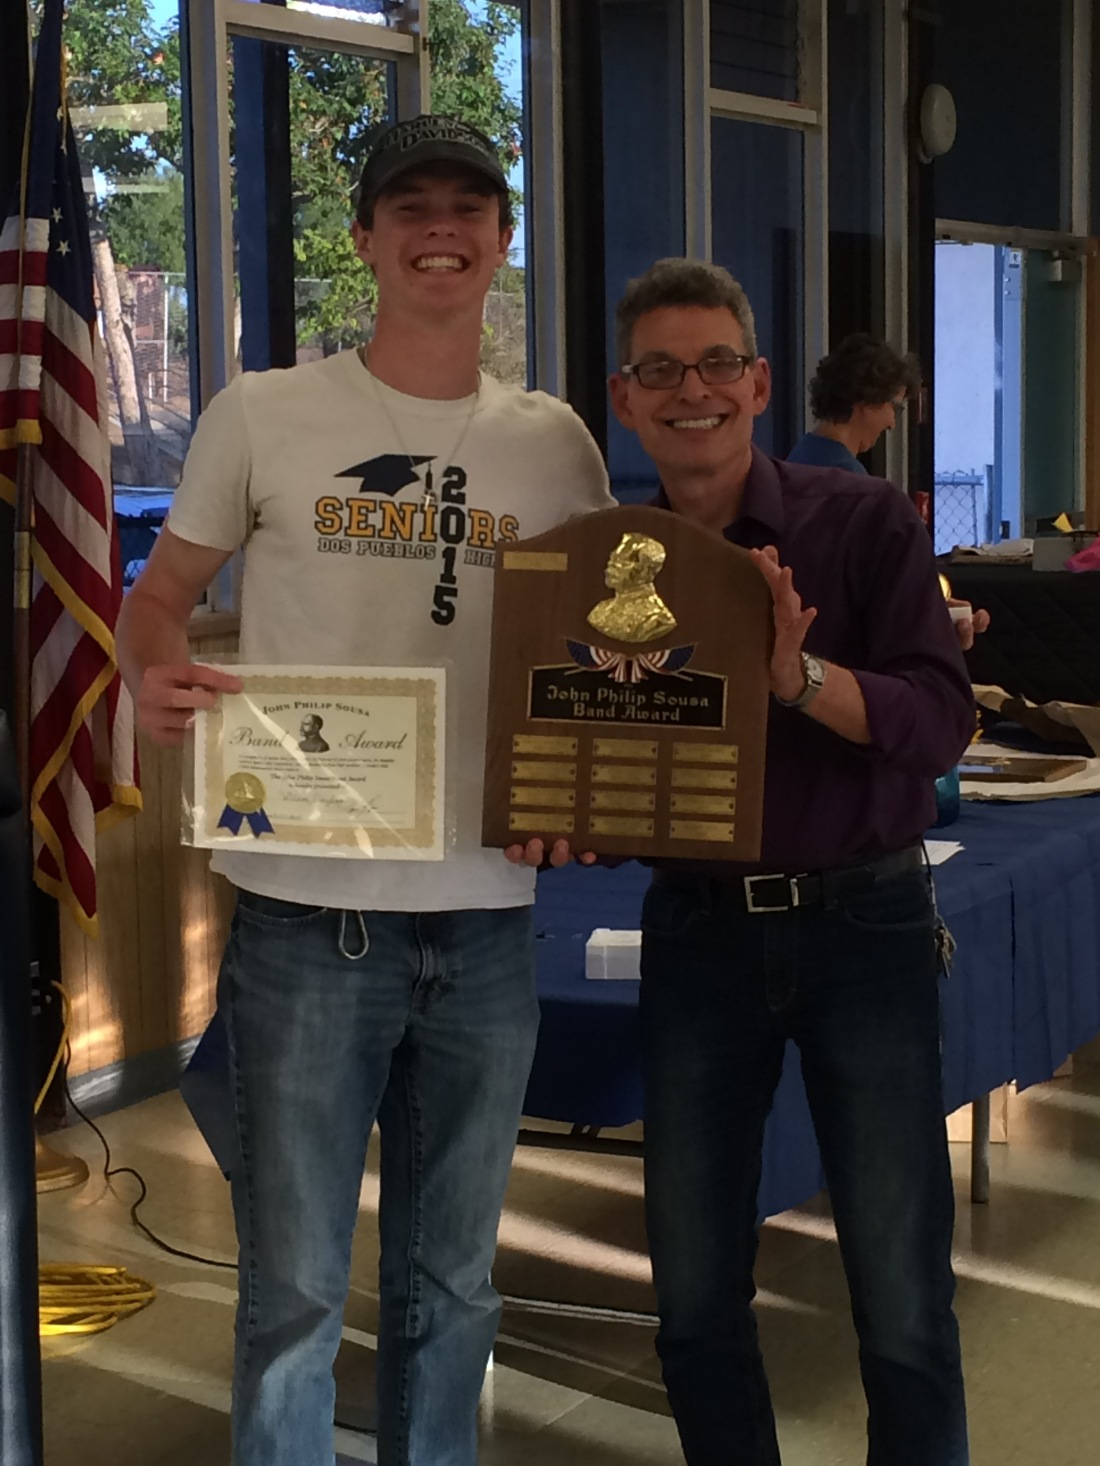 The following week at the DPHS Music Banquet, Wilson was awarded the John Philip Sousa Award by his band director...a high honor given for both musical excellence and character.